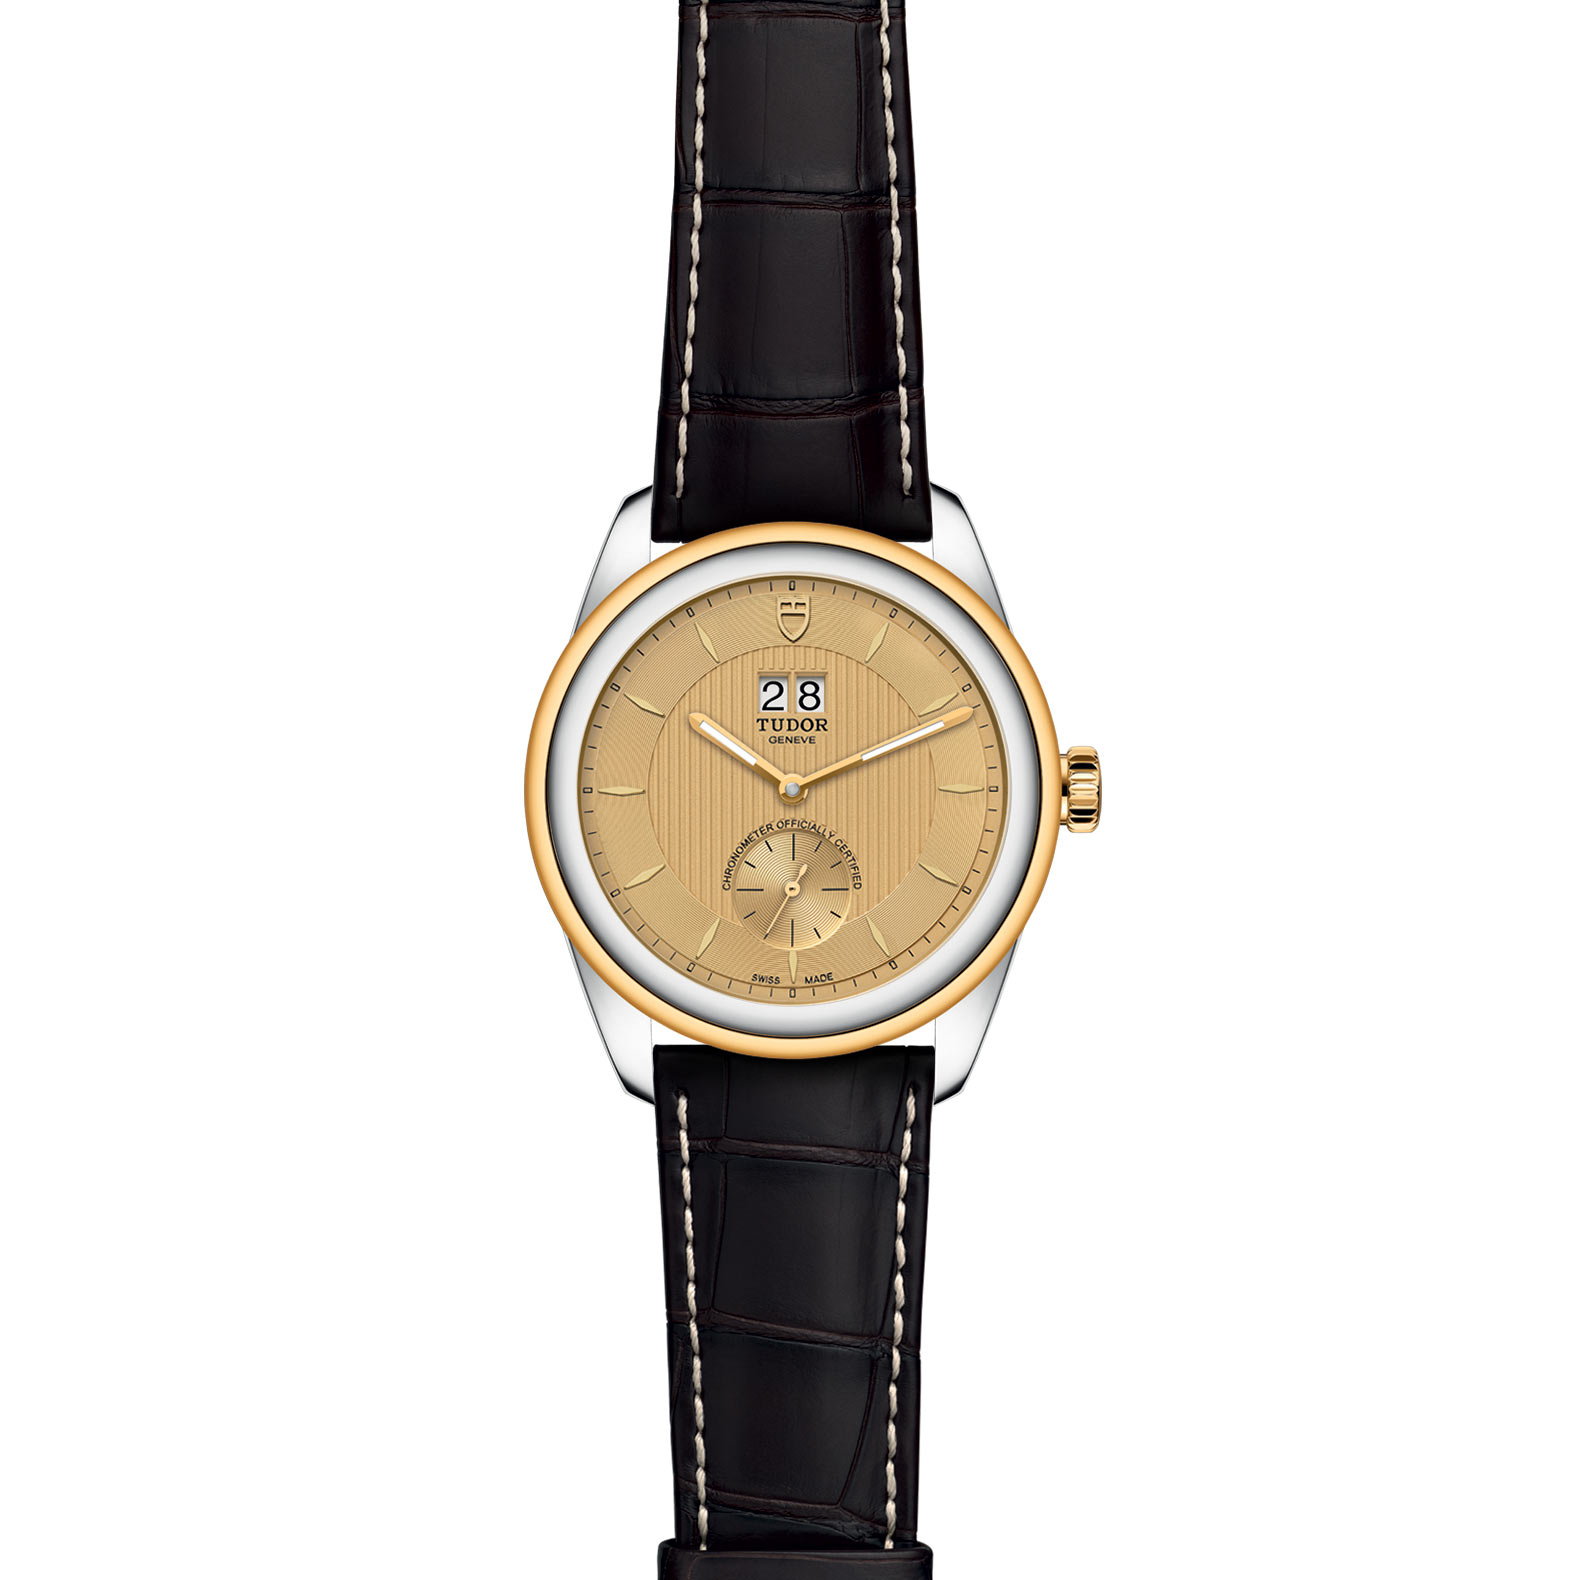 TUDOR Glamour Double Date M57103 0021 Frontfacing